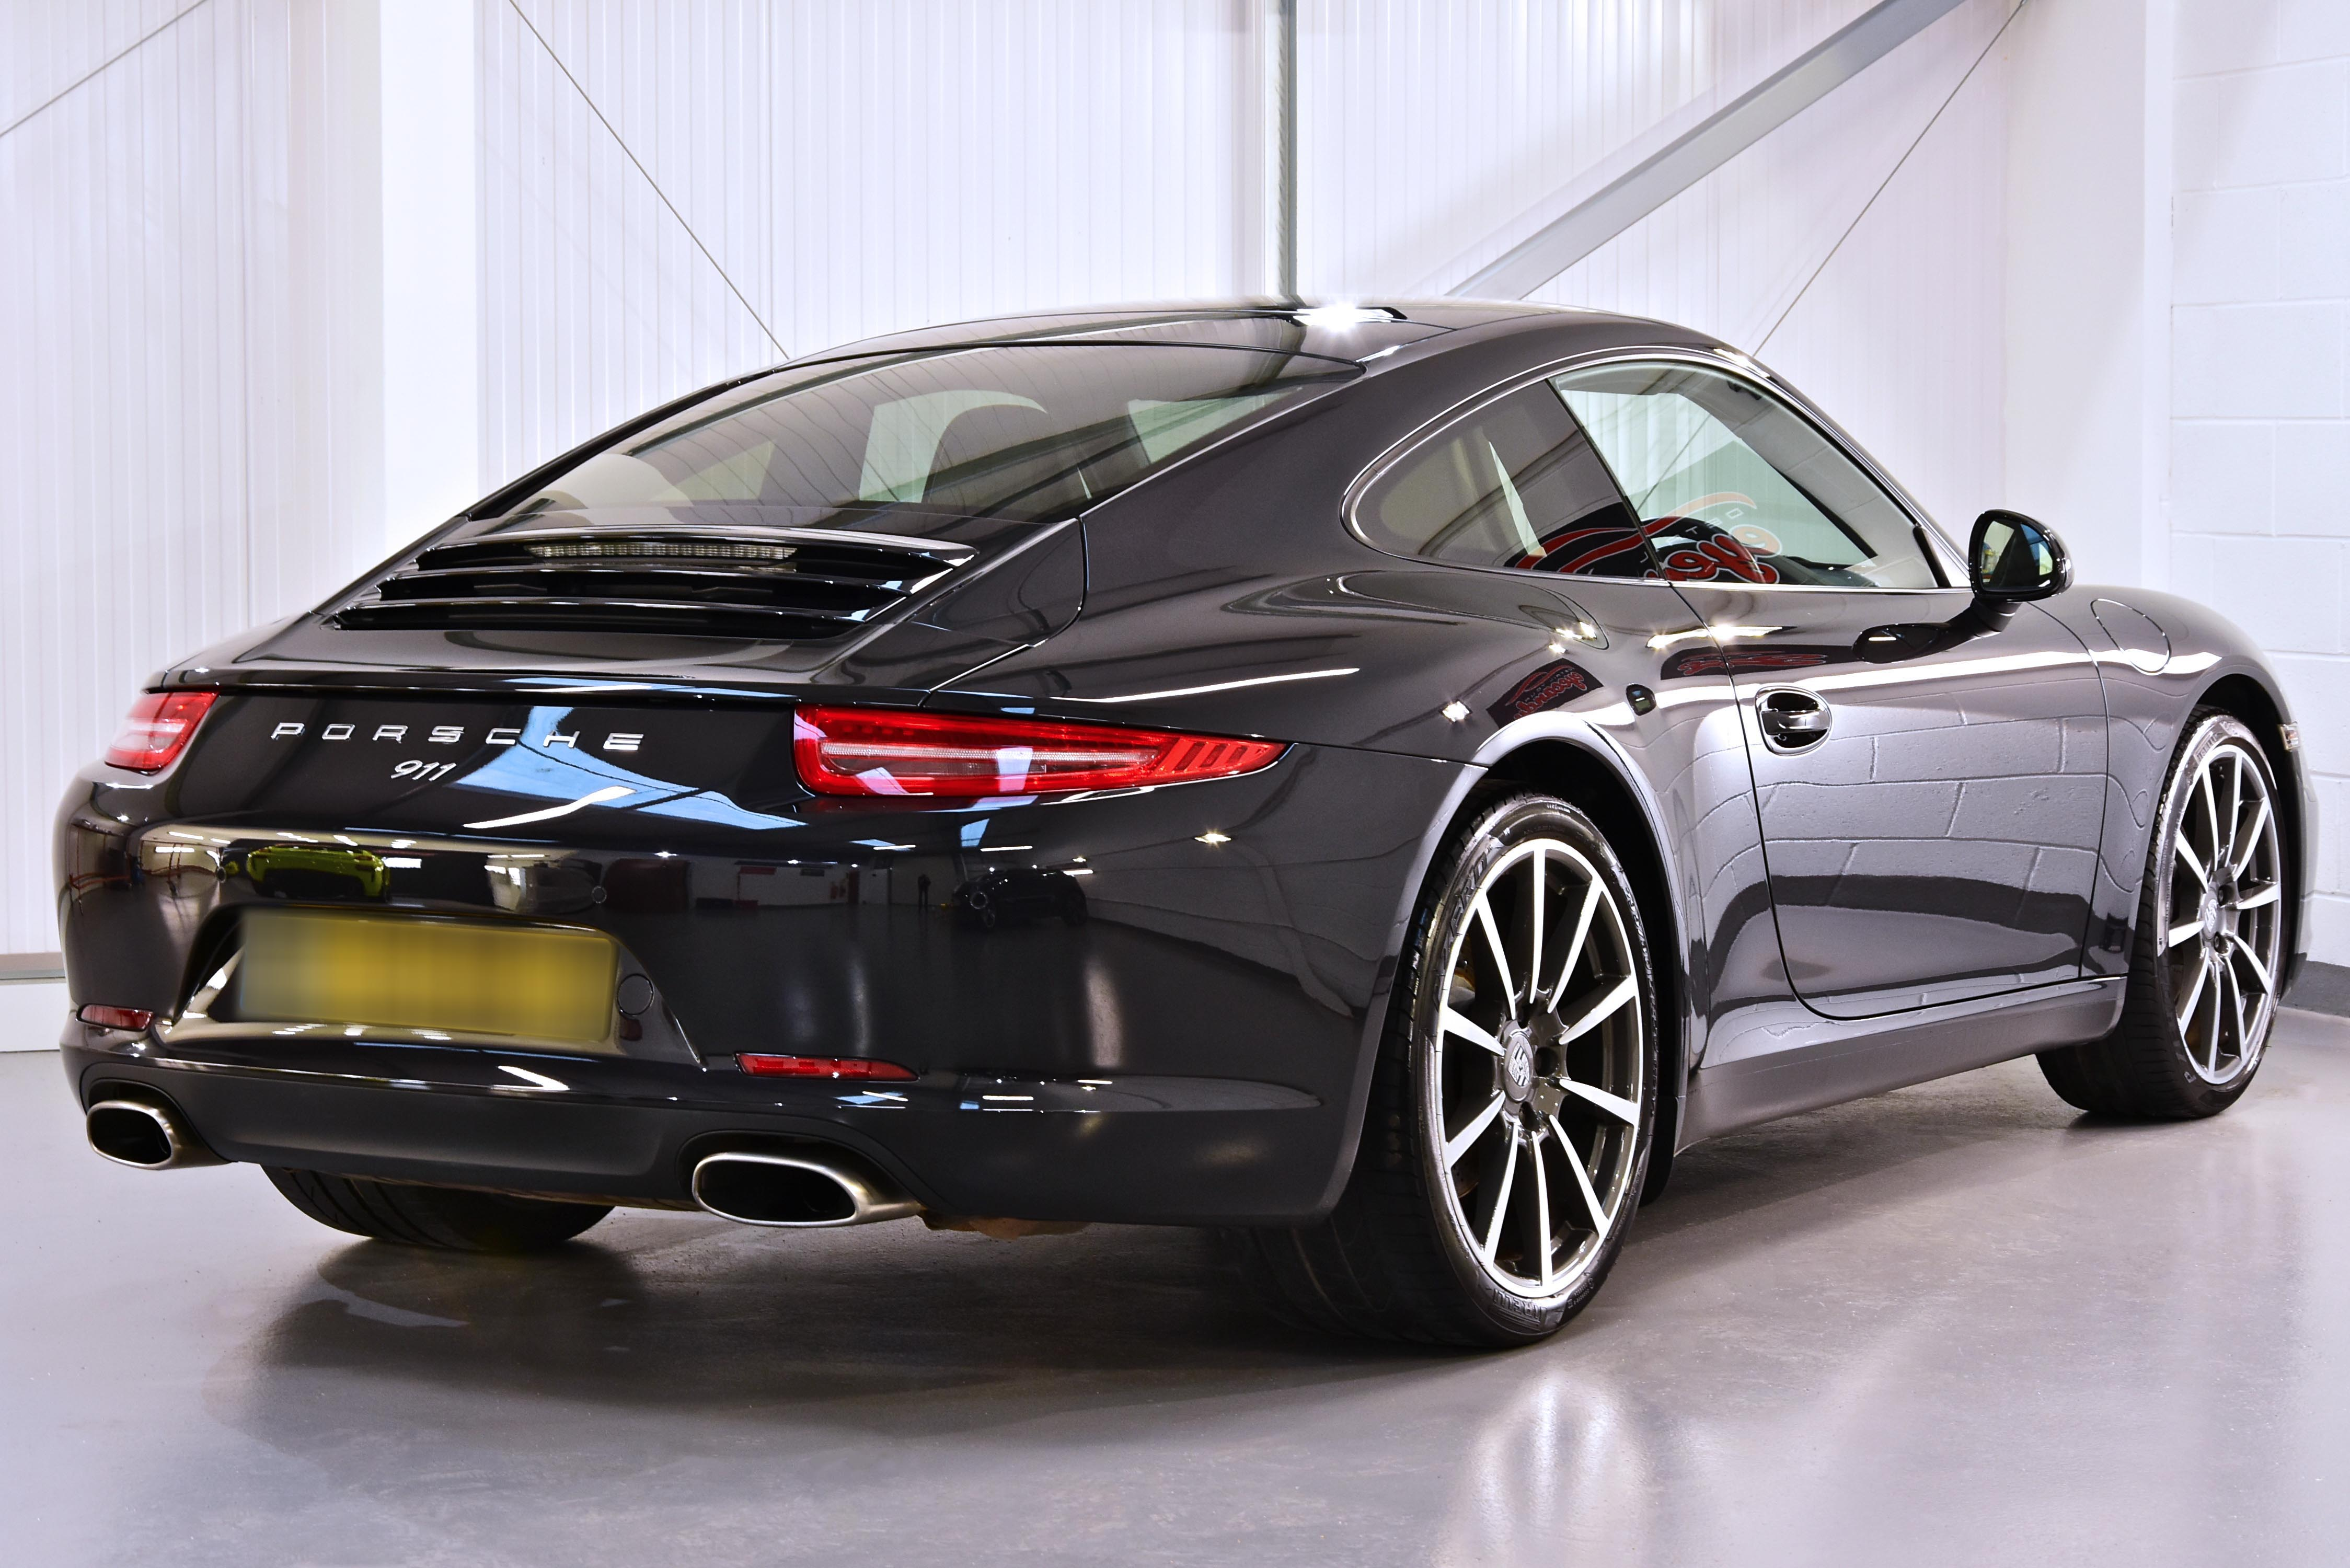 Porsche 911 Paint Correction Detail with Gtechniq Crystal Serum Ultra